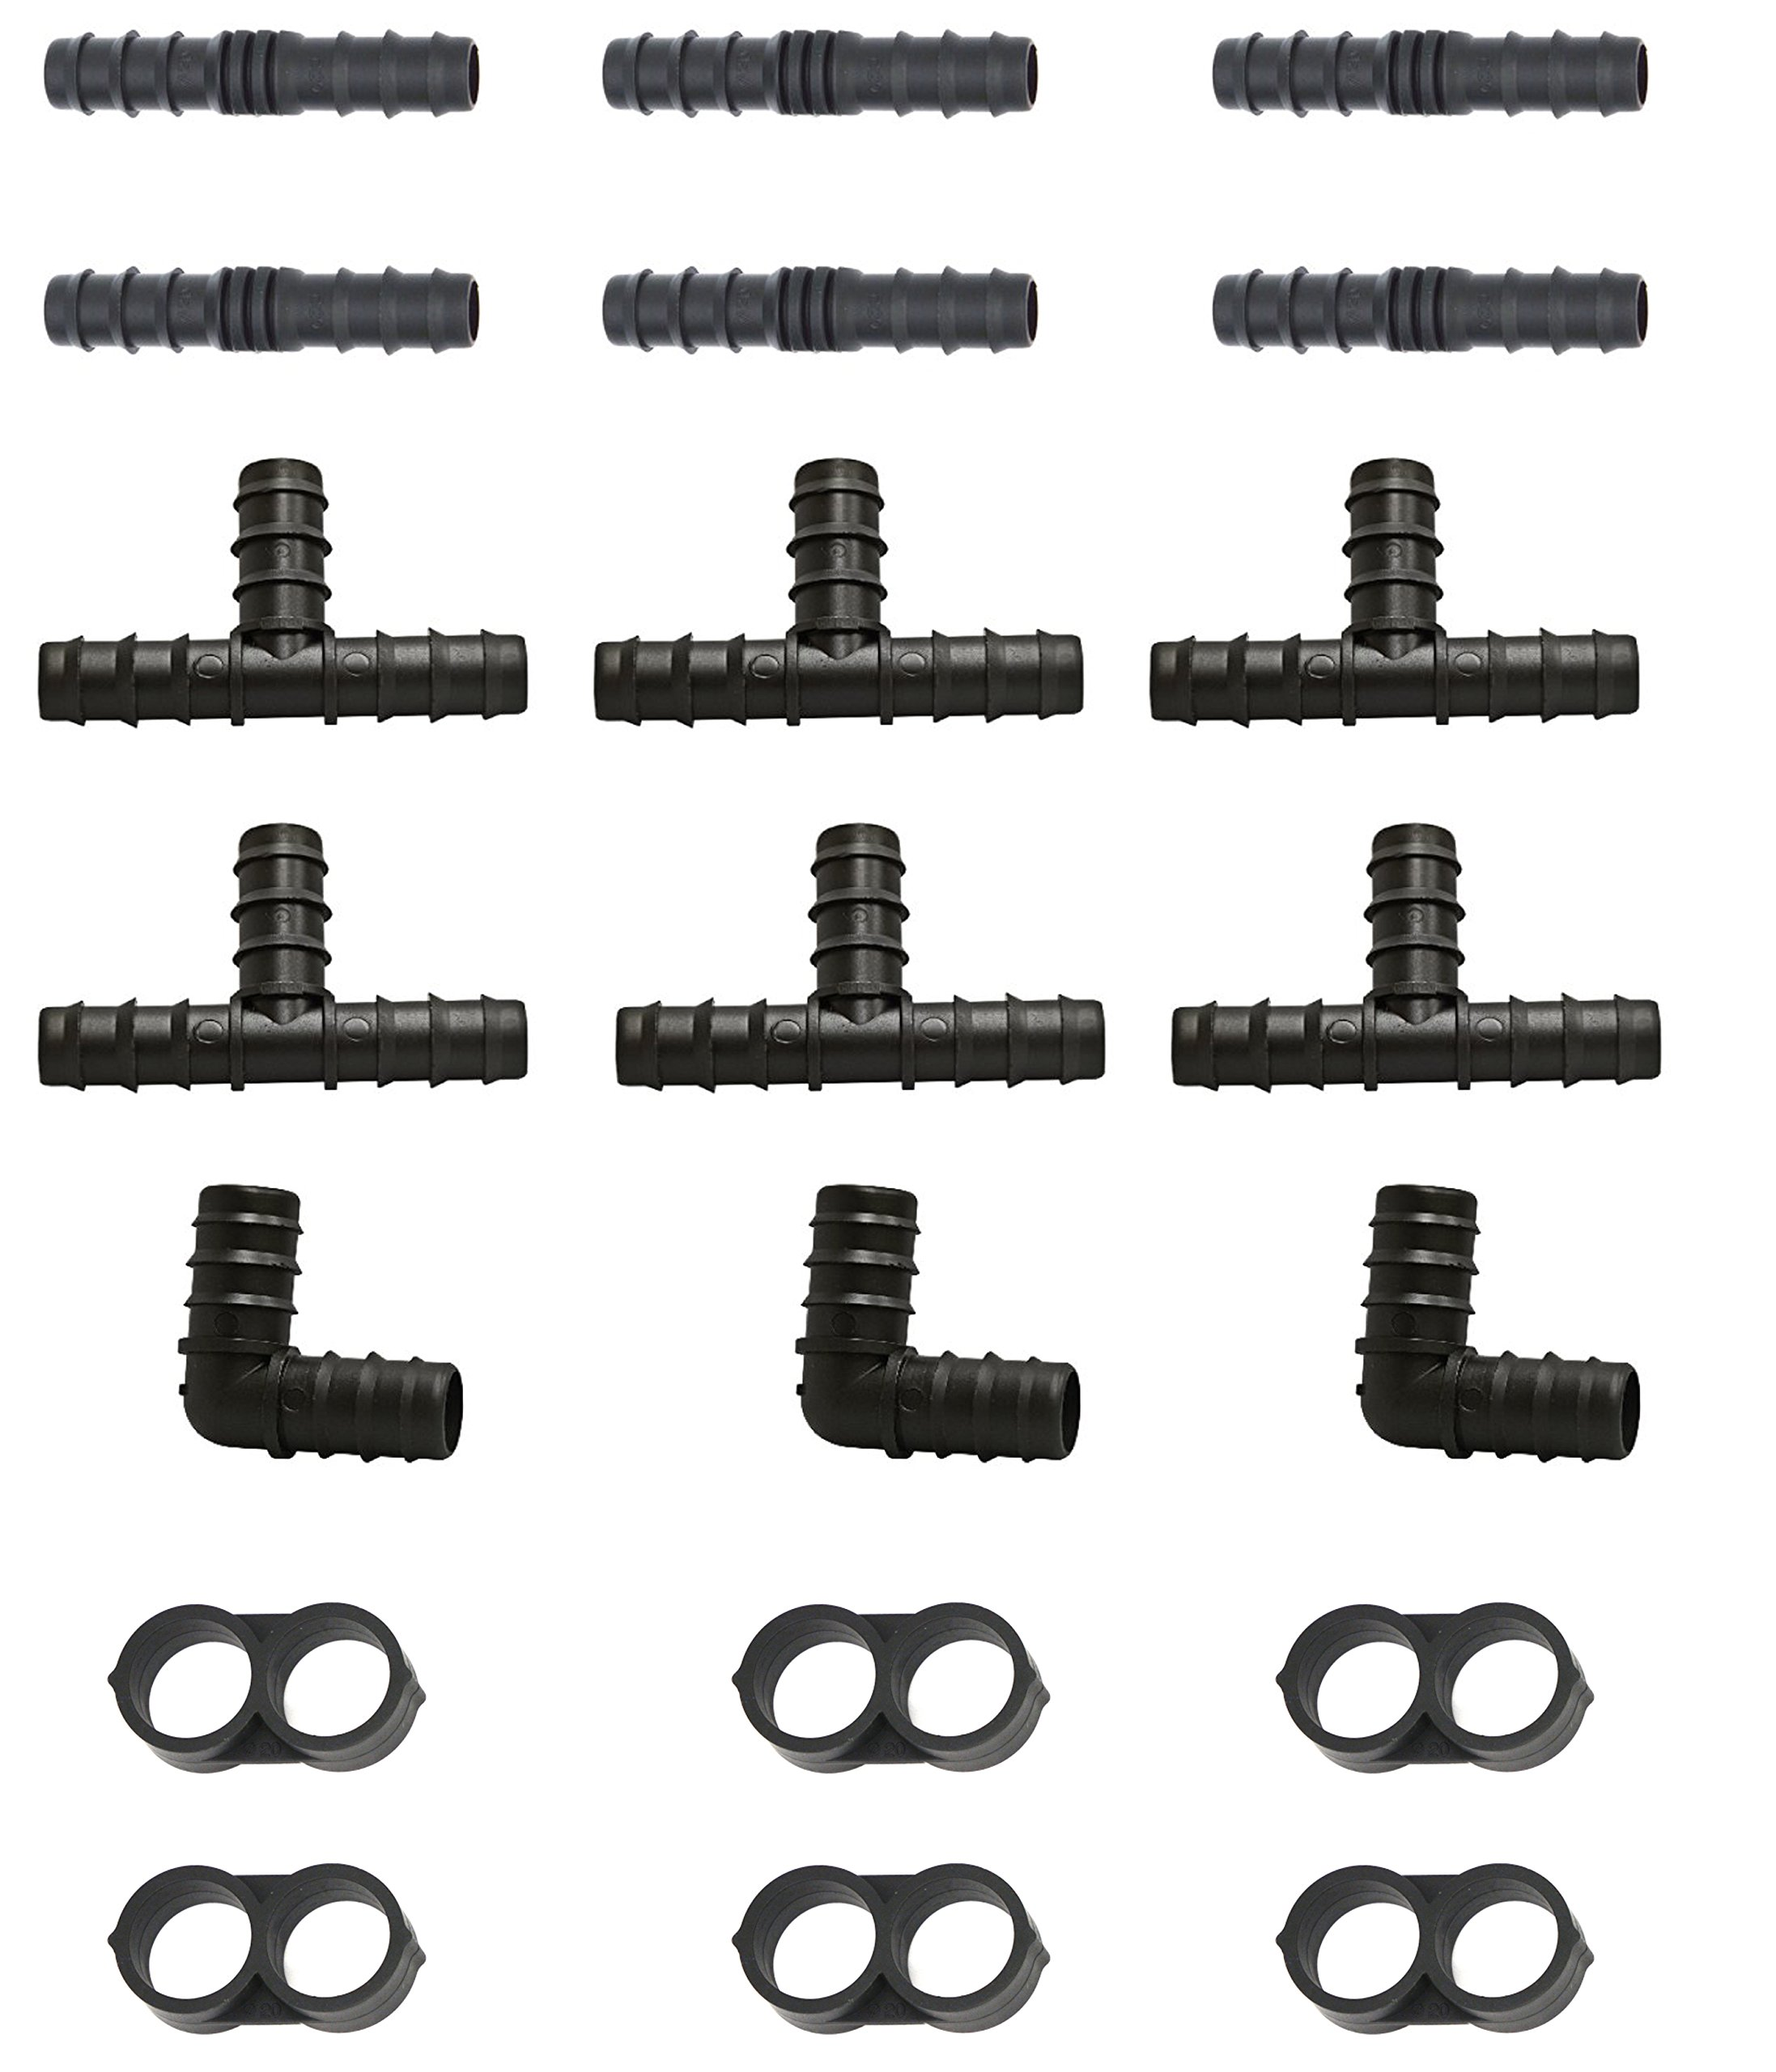 perhonor Irrigation Fittings for 1/2'' Tubing 6 Tees 6 Couplings 3 Elbows 6 Tubing End Caps for Compatible Drip and Rain Bird or Plant Watering System- 21 Piece Set for Drip Irrigation Systems